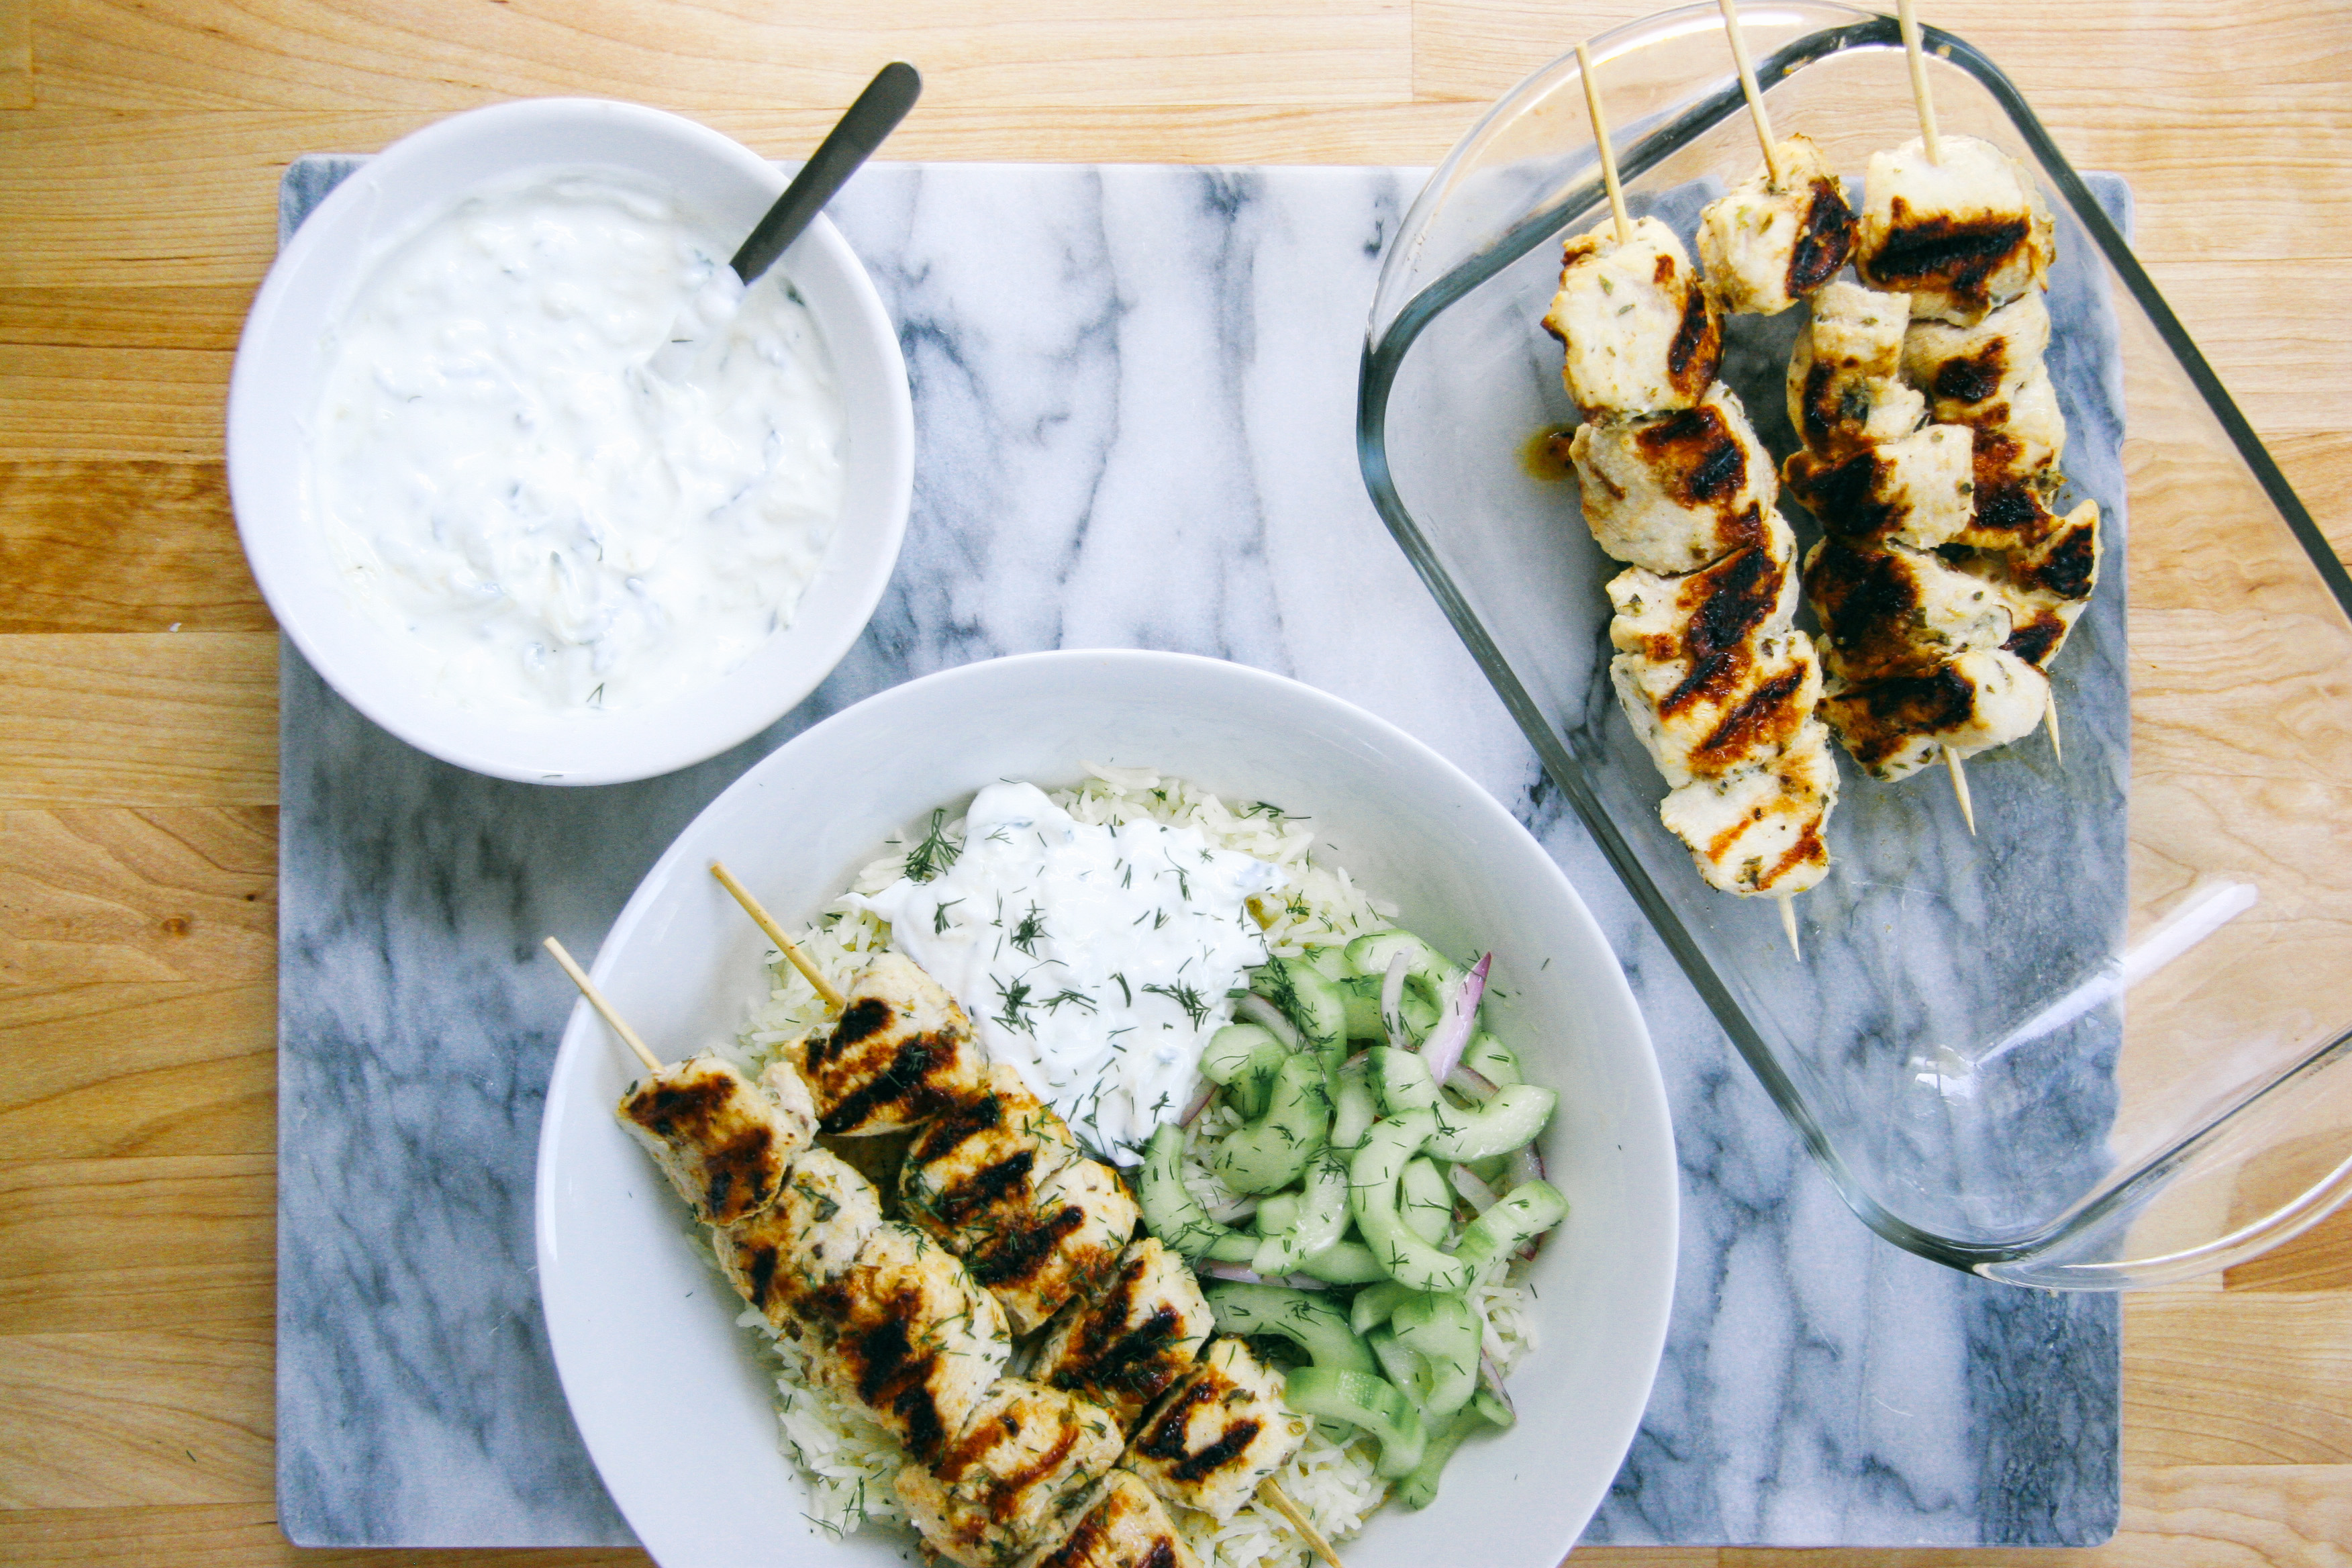 Grilled Chicken Kebab Bowls with Cucumber salad and Tzatziki | I Will Not Eat Oysters